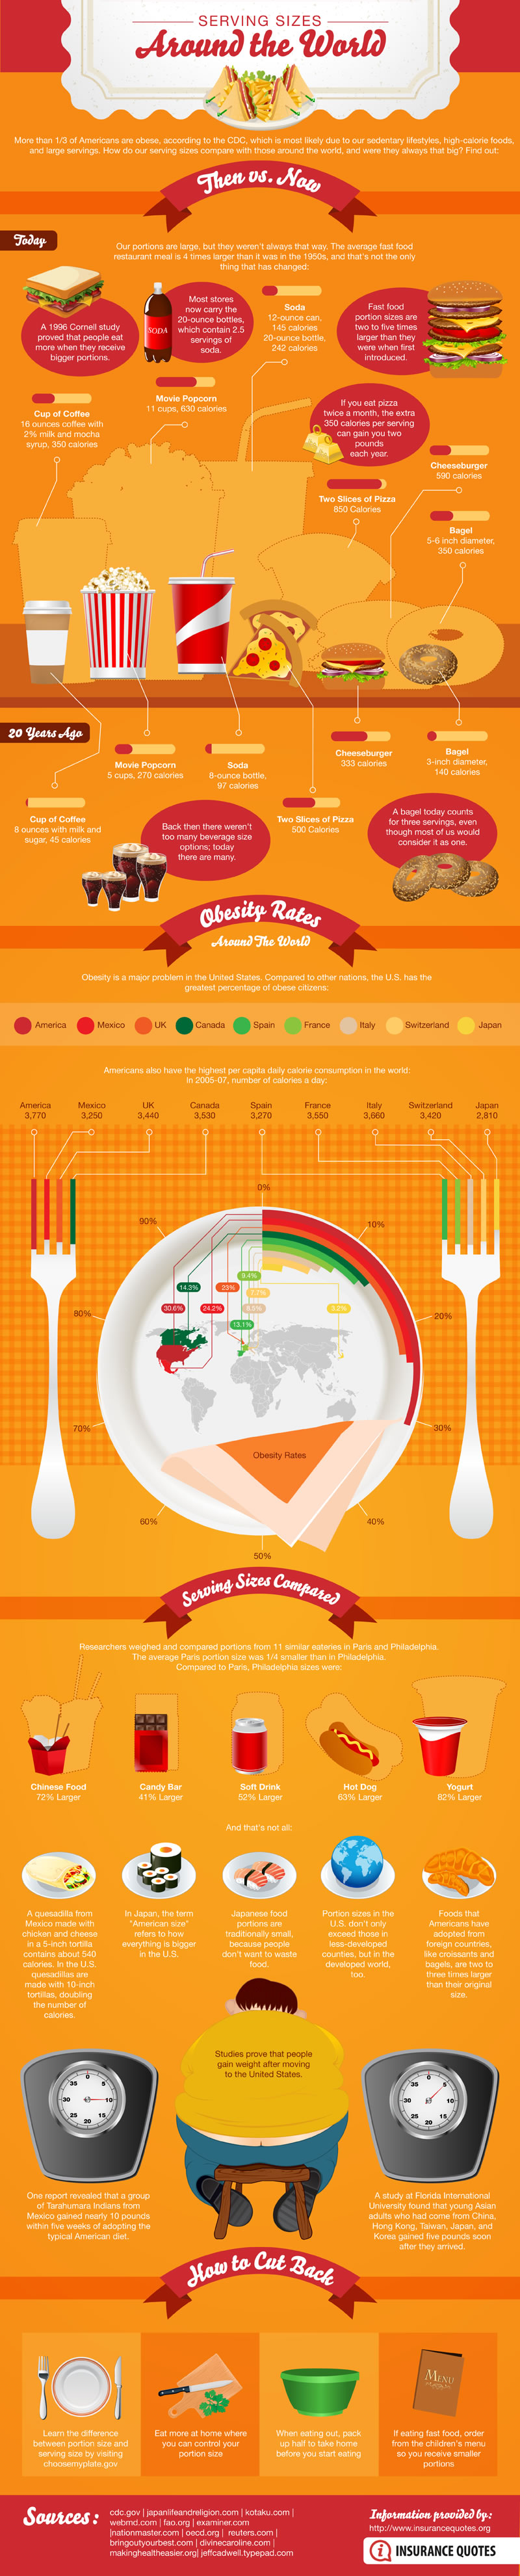 Serving sizes and around the world